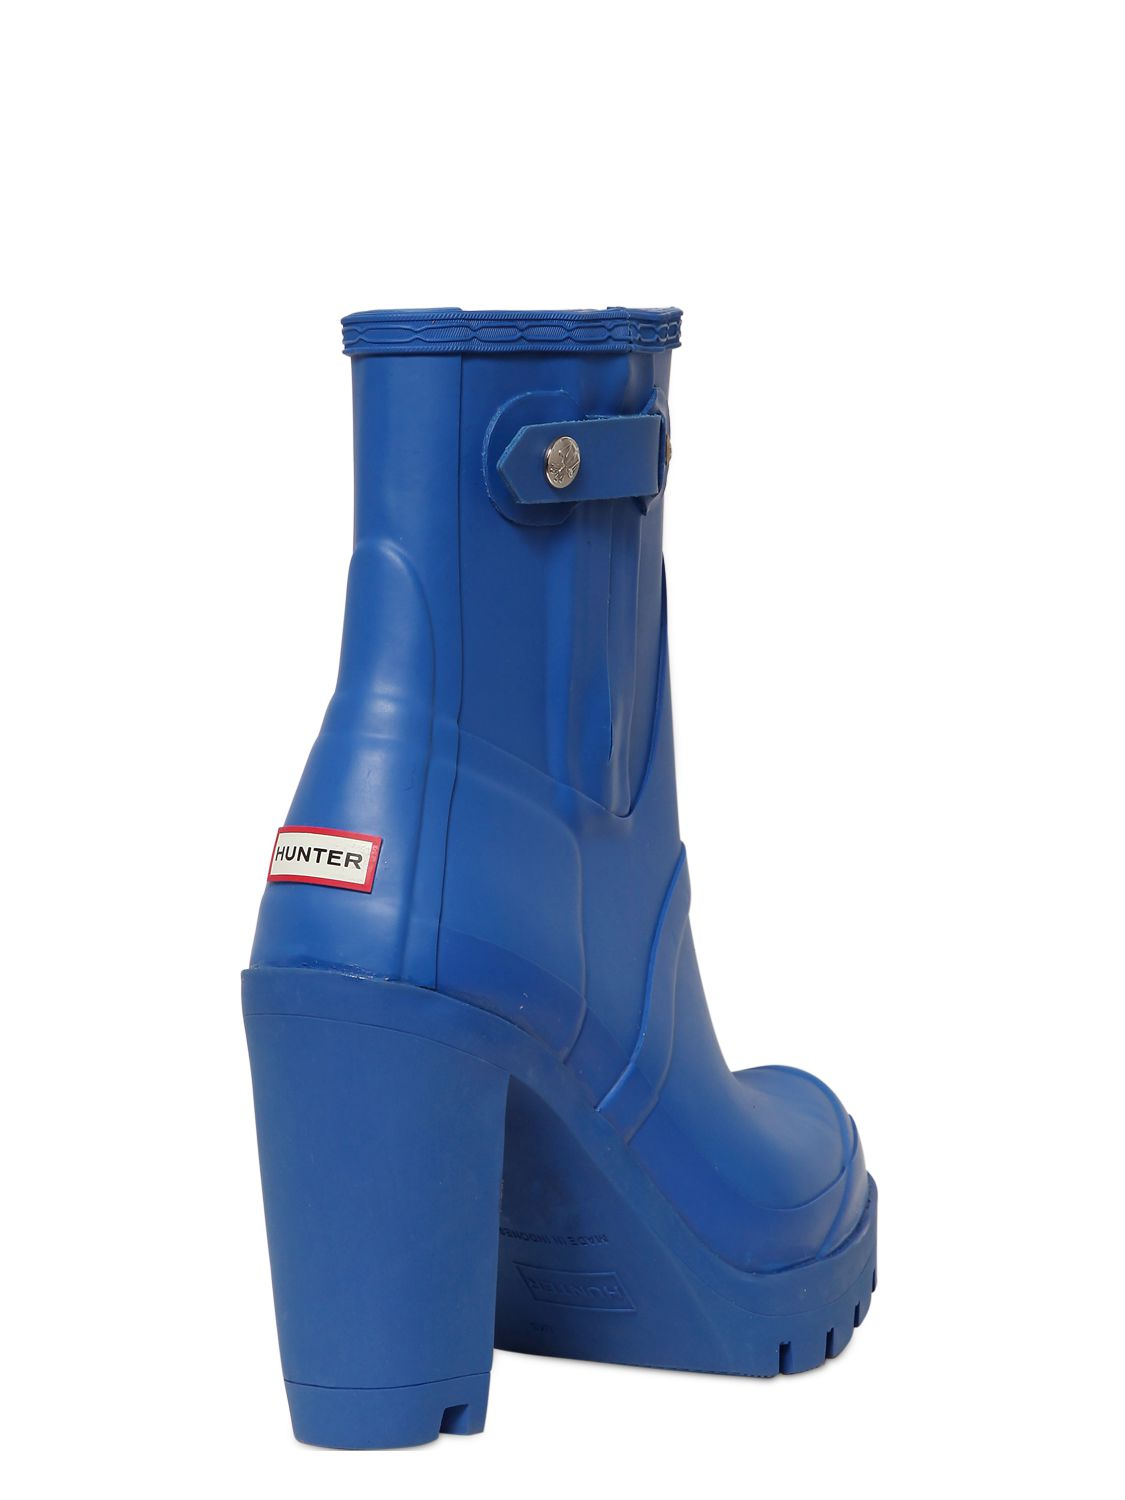 Hunter 110mm High Heel Rubber Ankle Boots In Blue Lyst